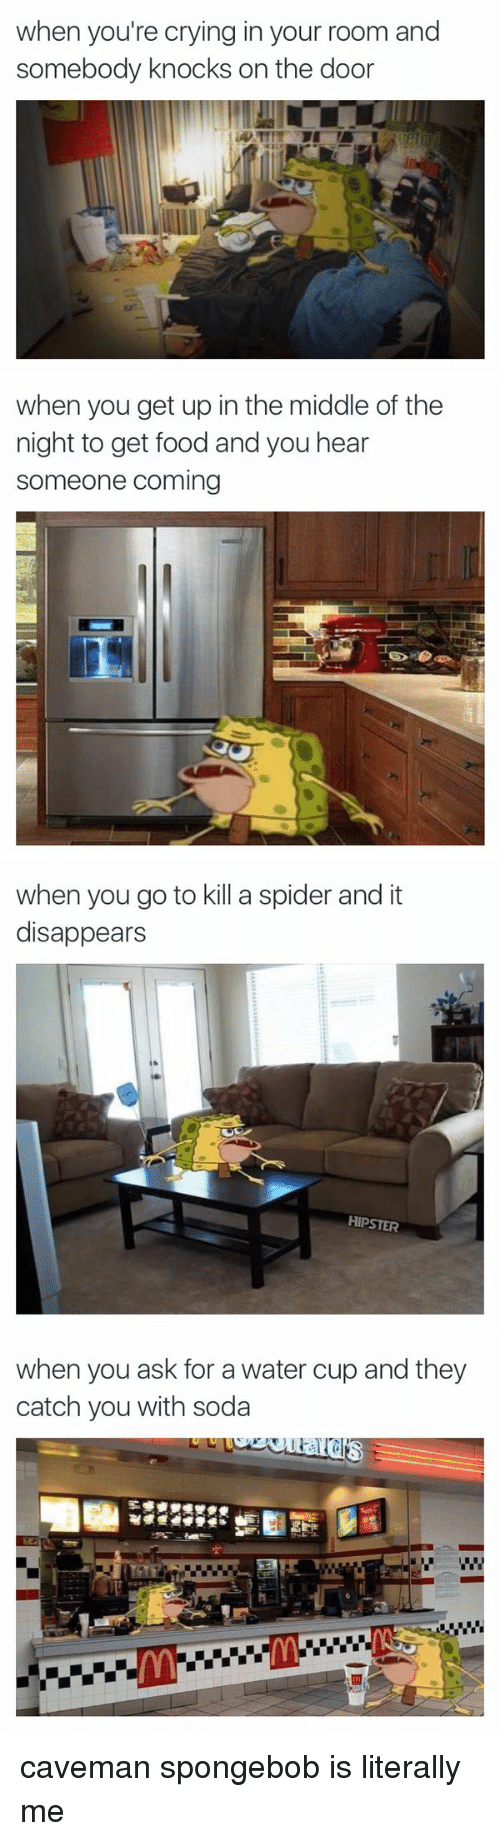 Crying, Food, and Funny: when you're crying in your room and  somebody knocks on the door   when you get up in the middle of the  night to get food and you hear  someone coming   when you go to kill a spider and it  disappears  HIPSTER   when you ask for a water cup and they  catch you with soda caveman spongebob is literally me